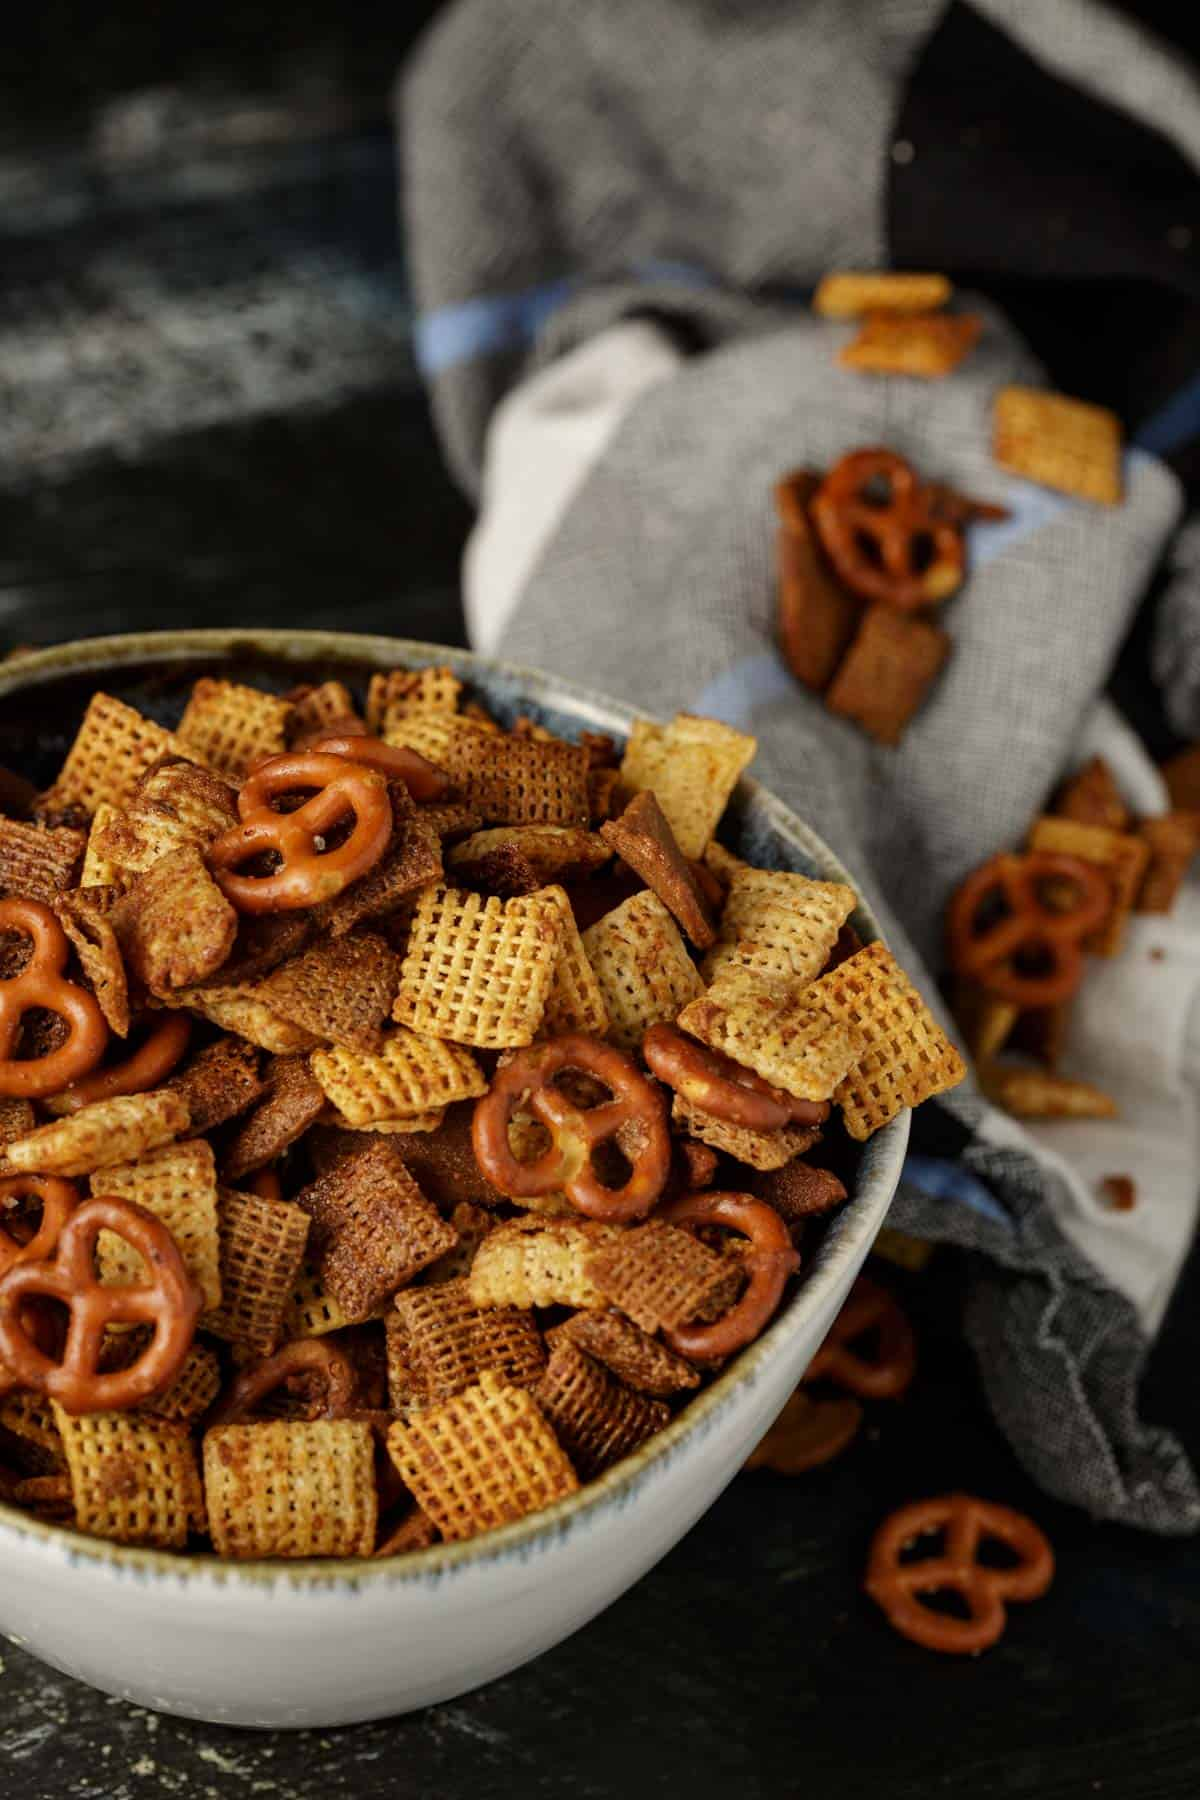 A bowl of homemade Chex mix.